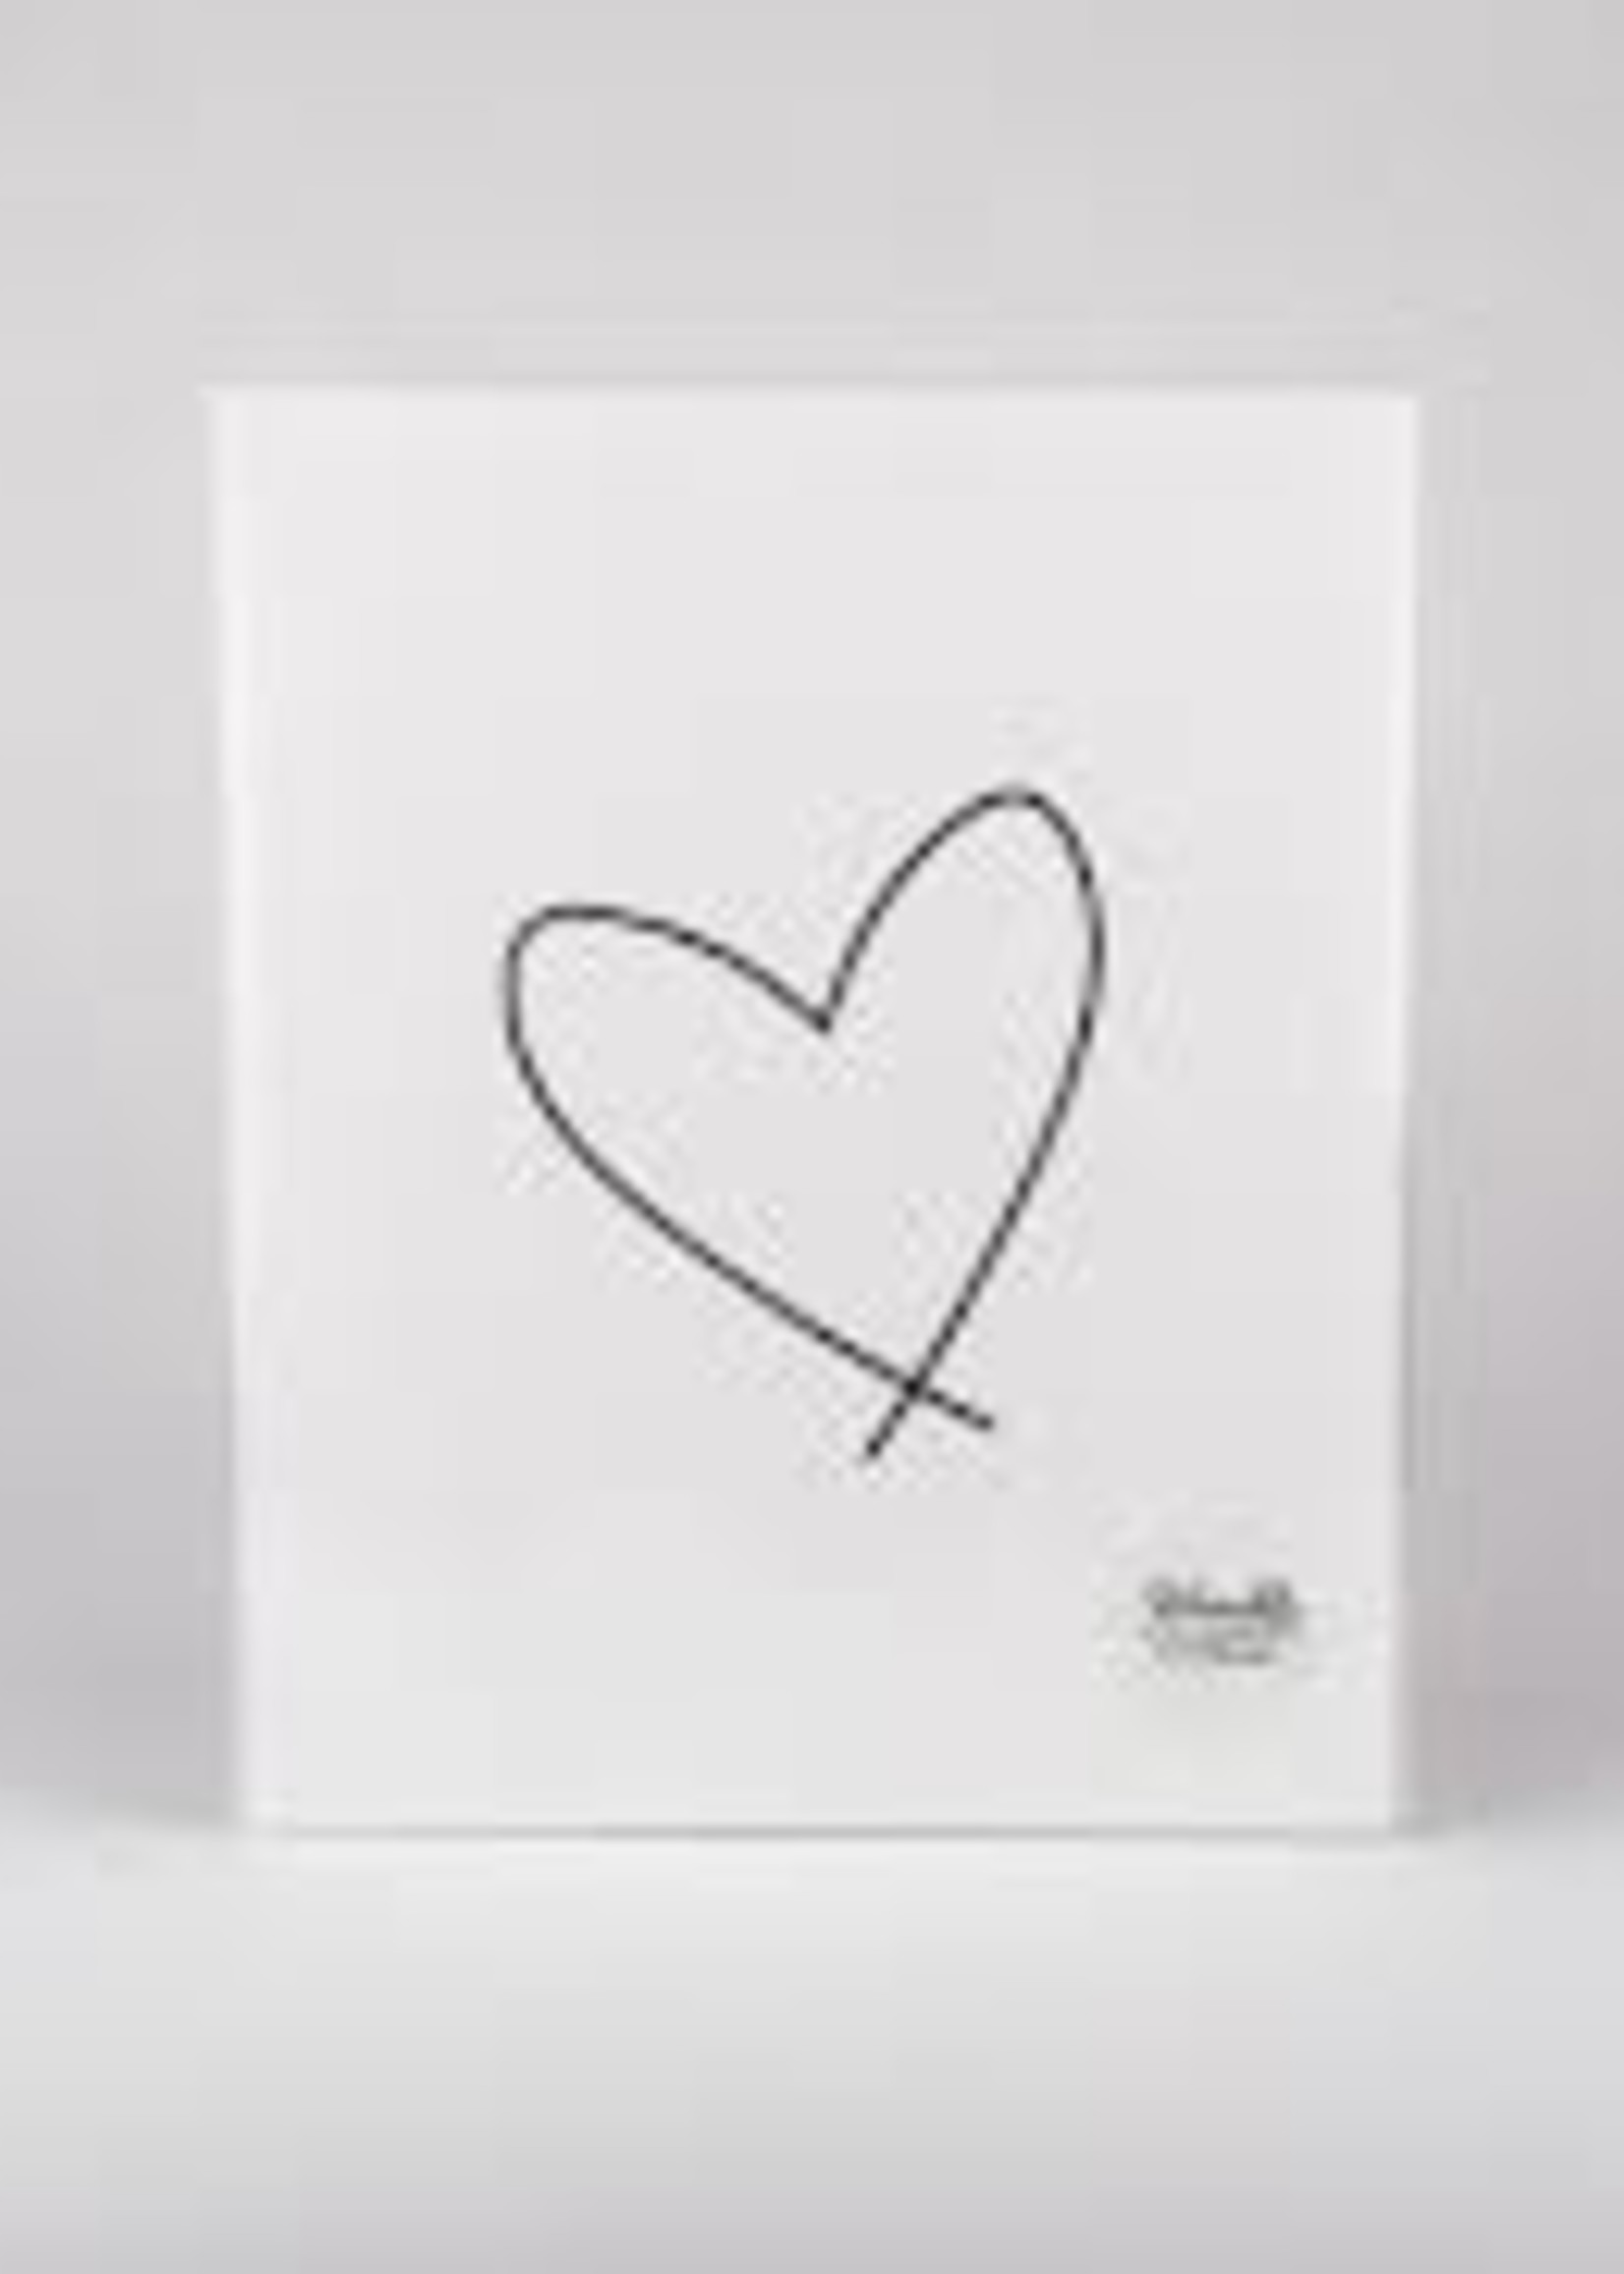 Wrinkle and Crease Lewiston Heart Poster